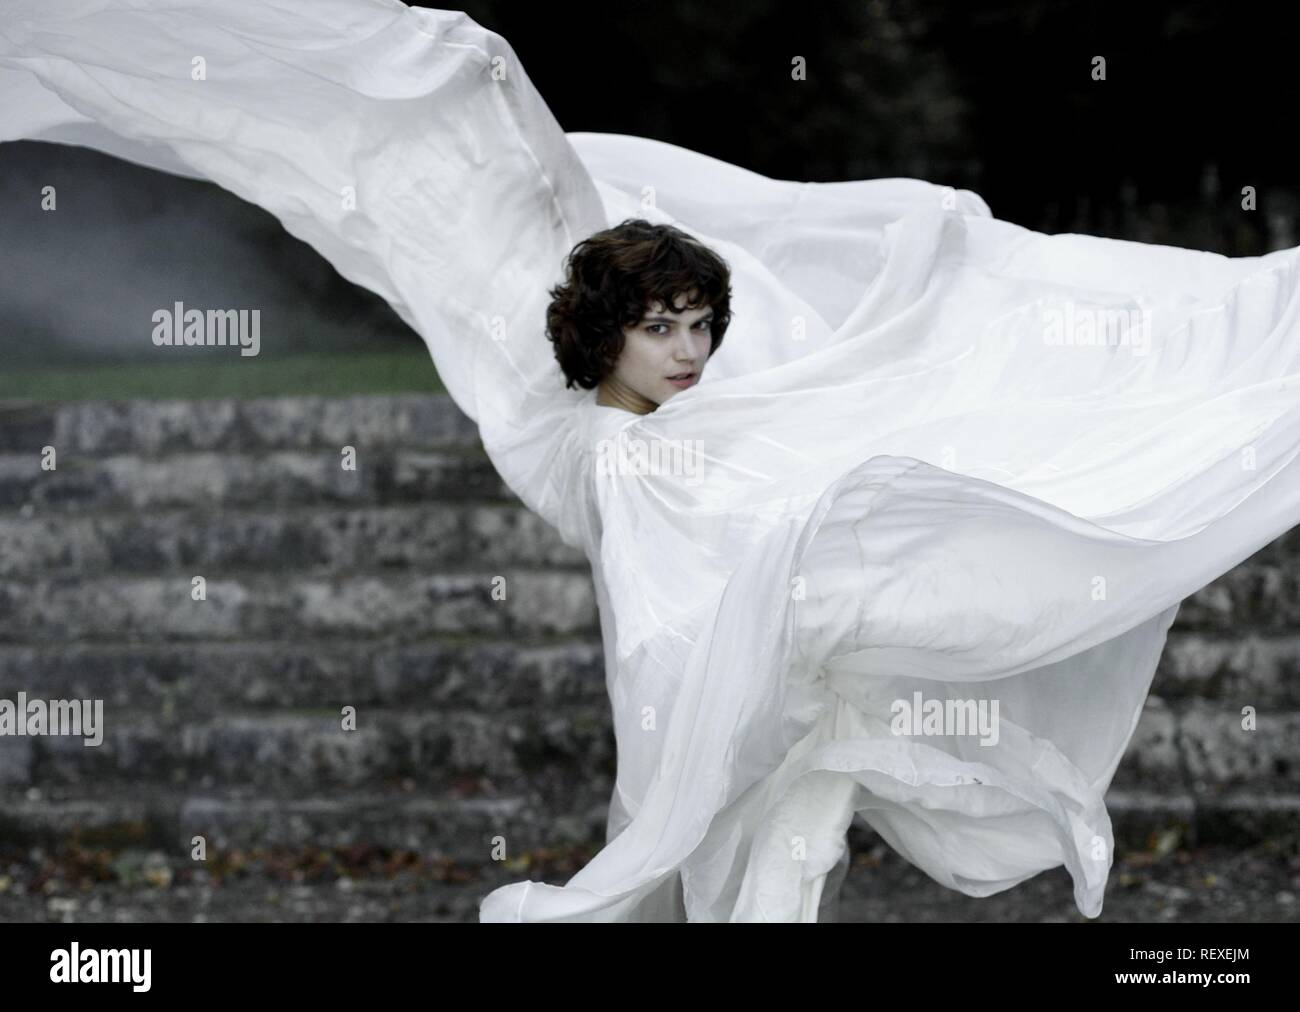 SOKO THE DANCER; LA DANSEUSE (2016) - Stock Image